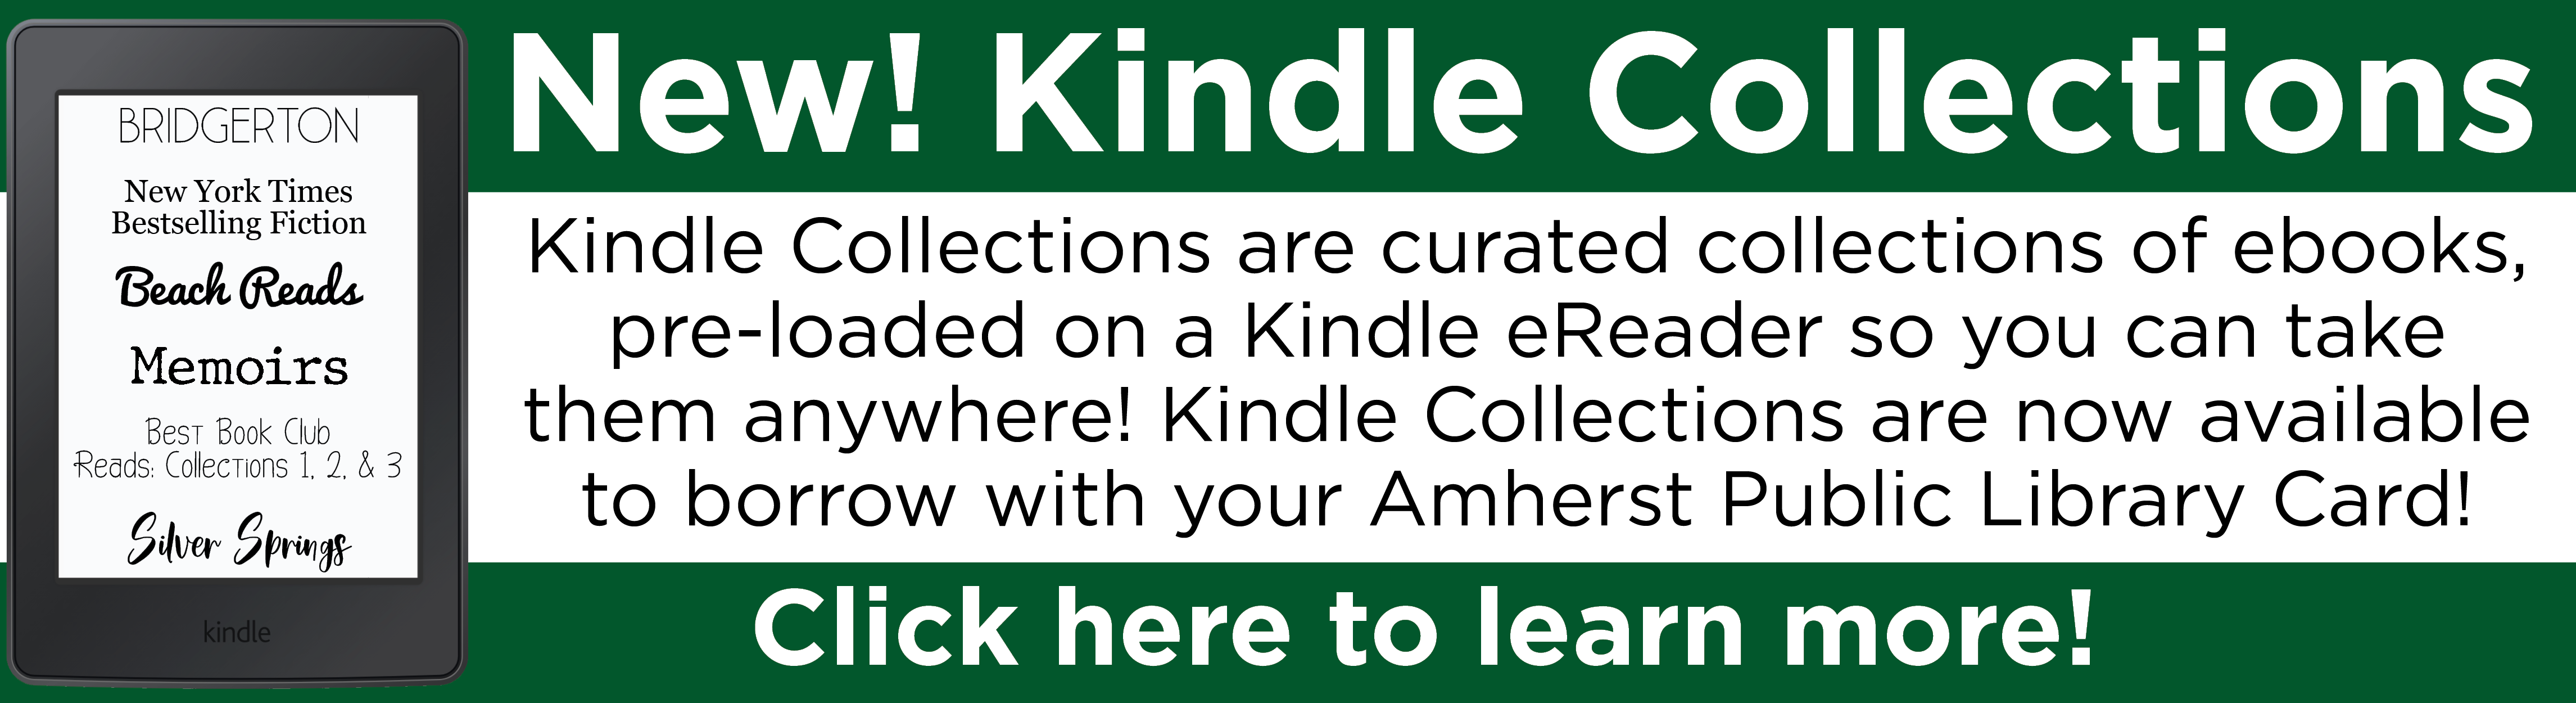 Kindle Collections